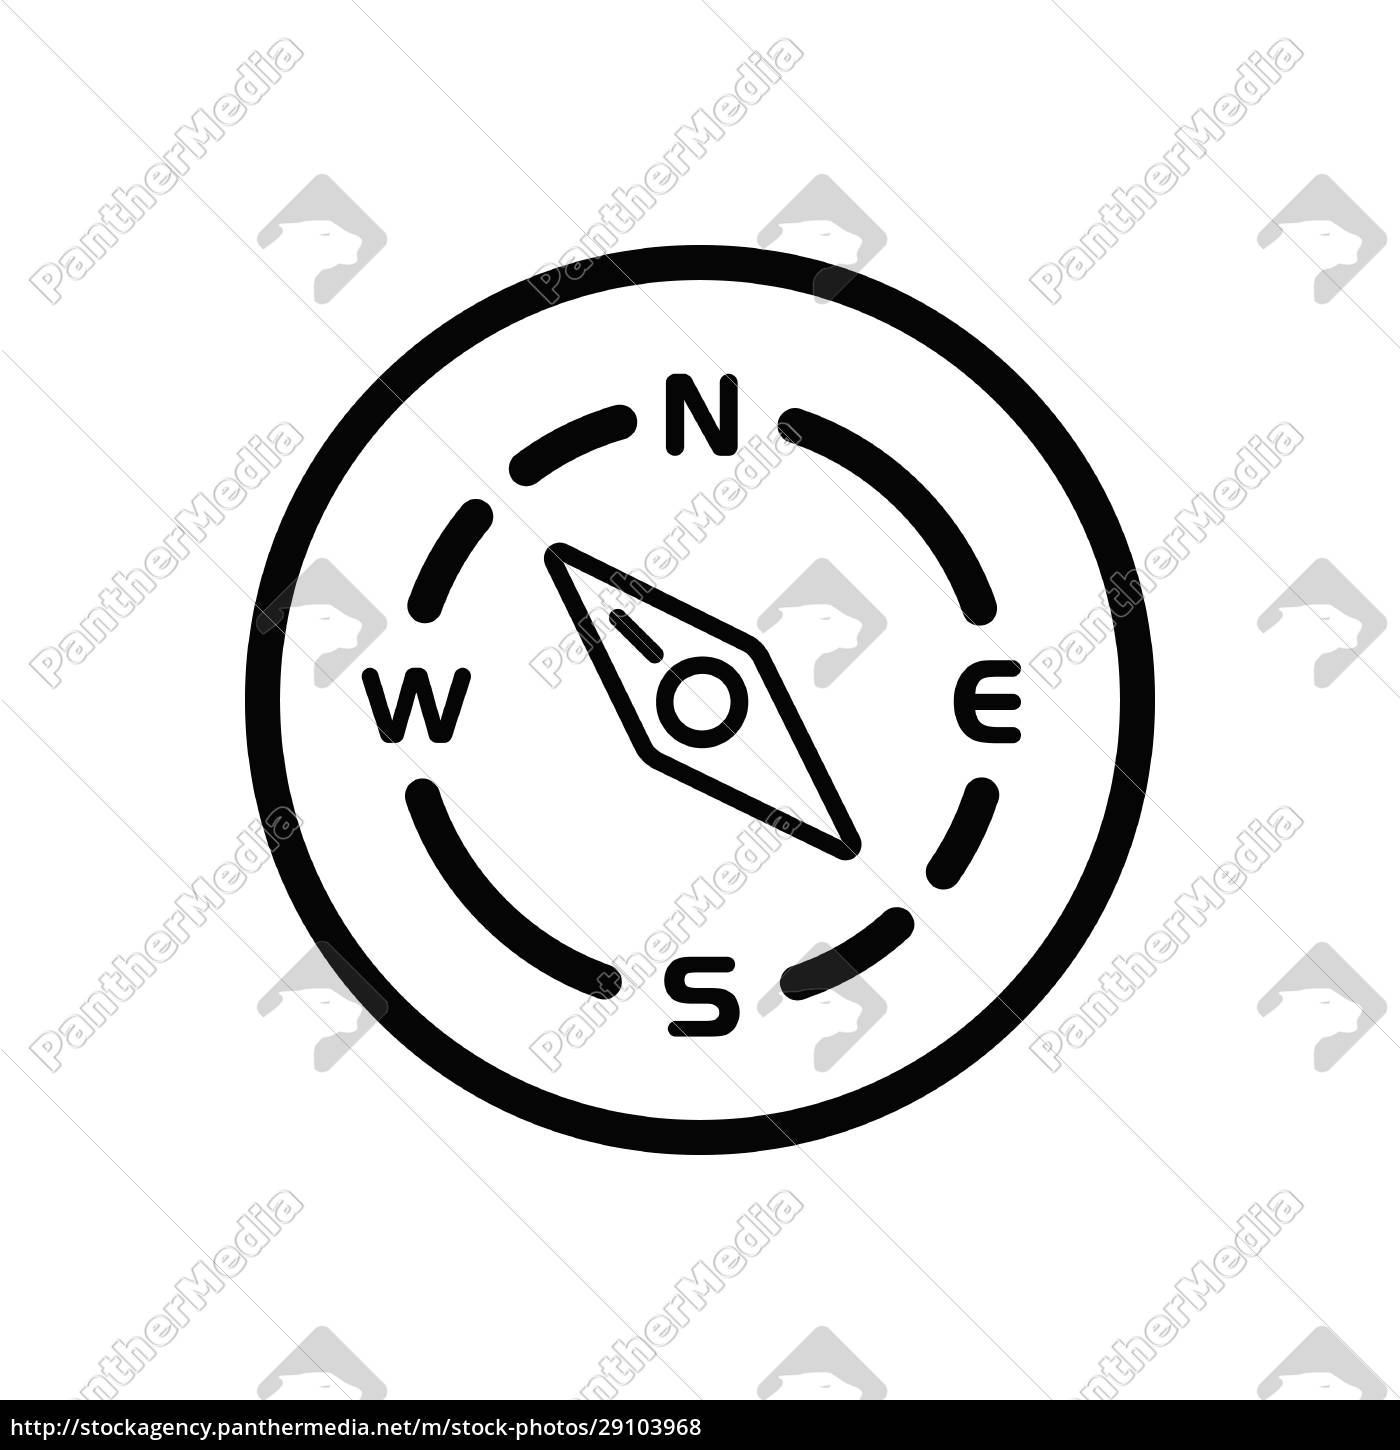 compass., north, west, direction., weather, icon - 29103968